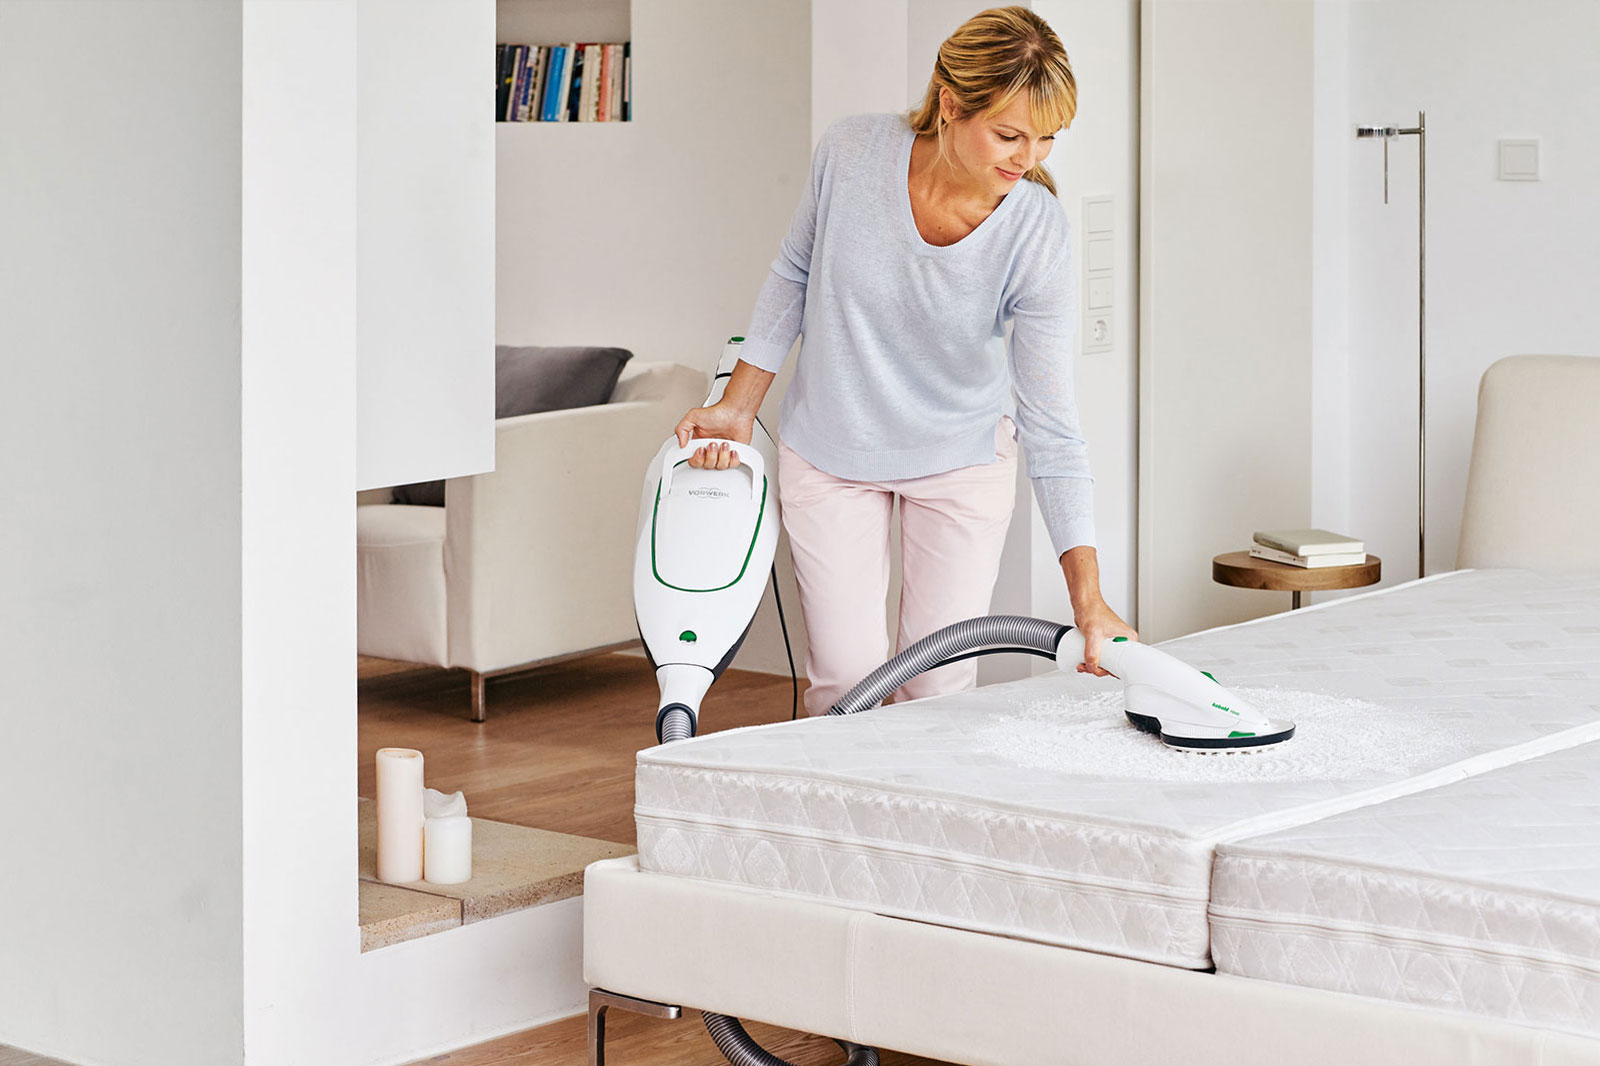 Hand vacuum cleaner Kobold made by Vorwerk